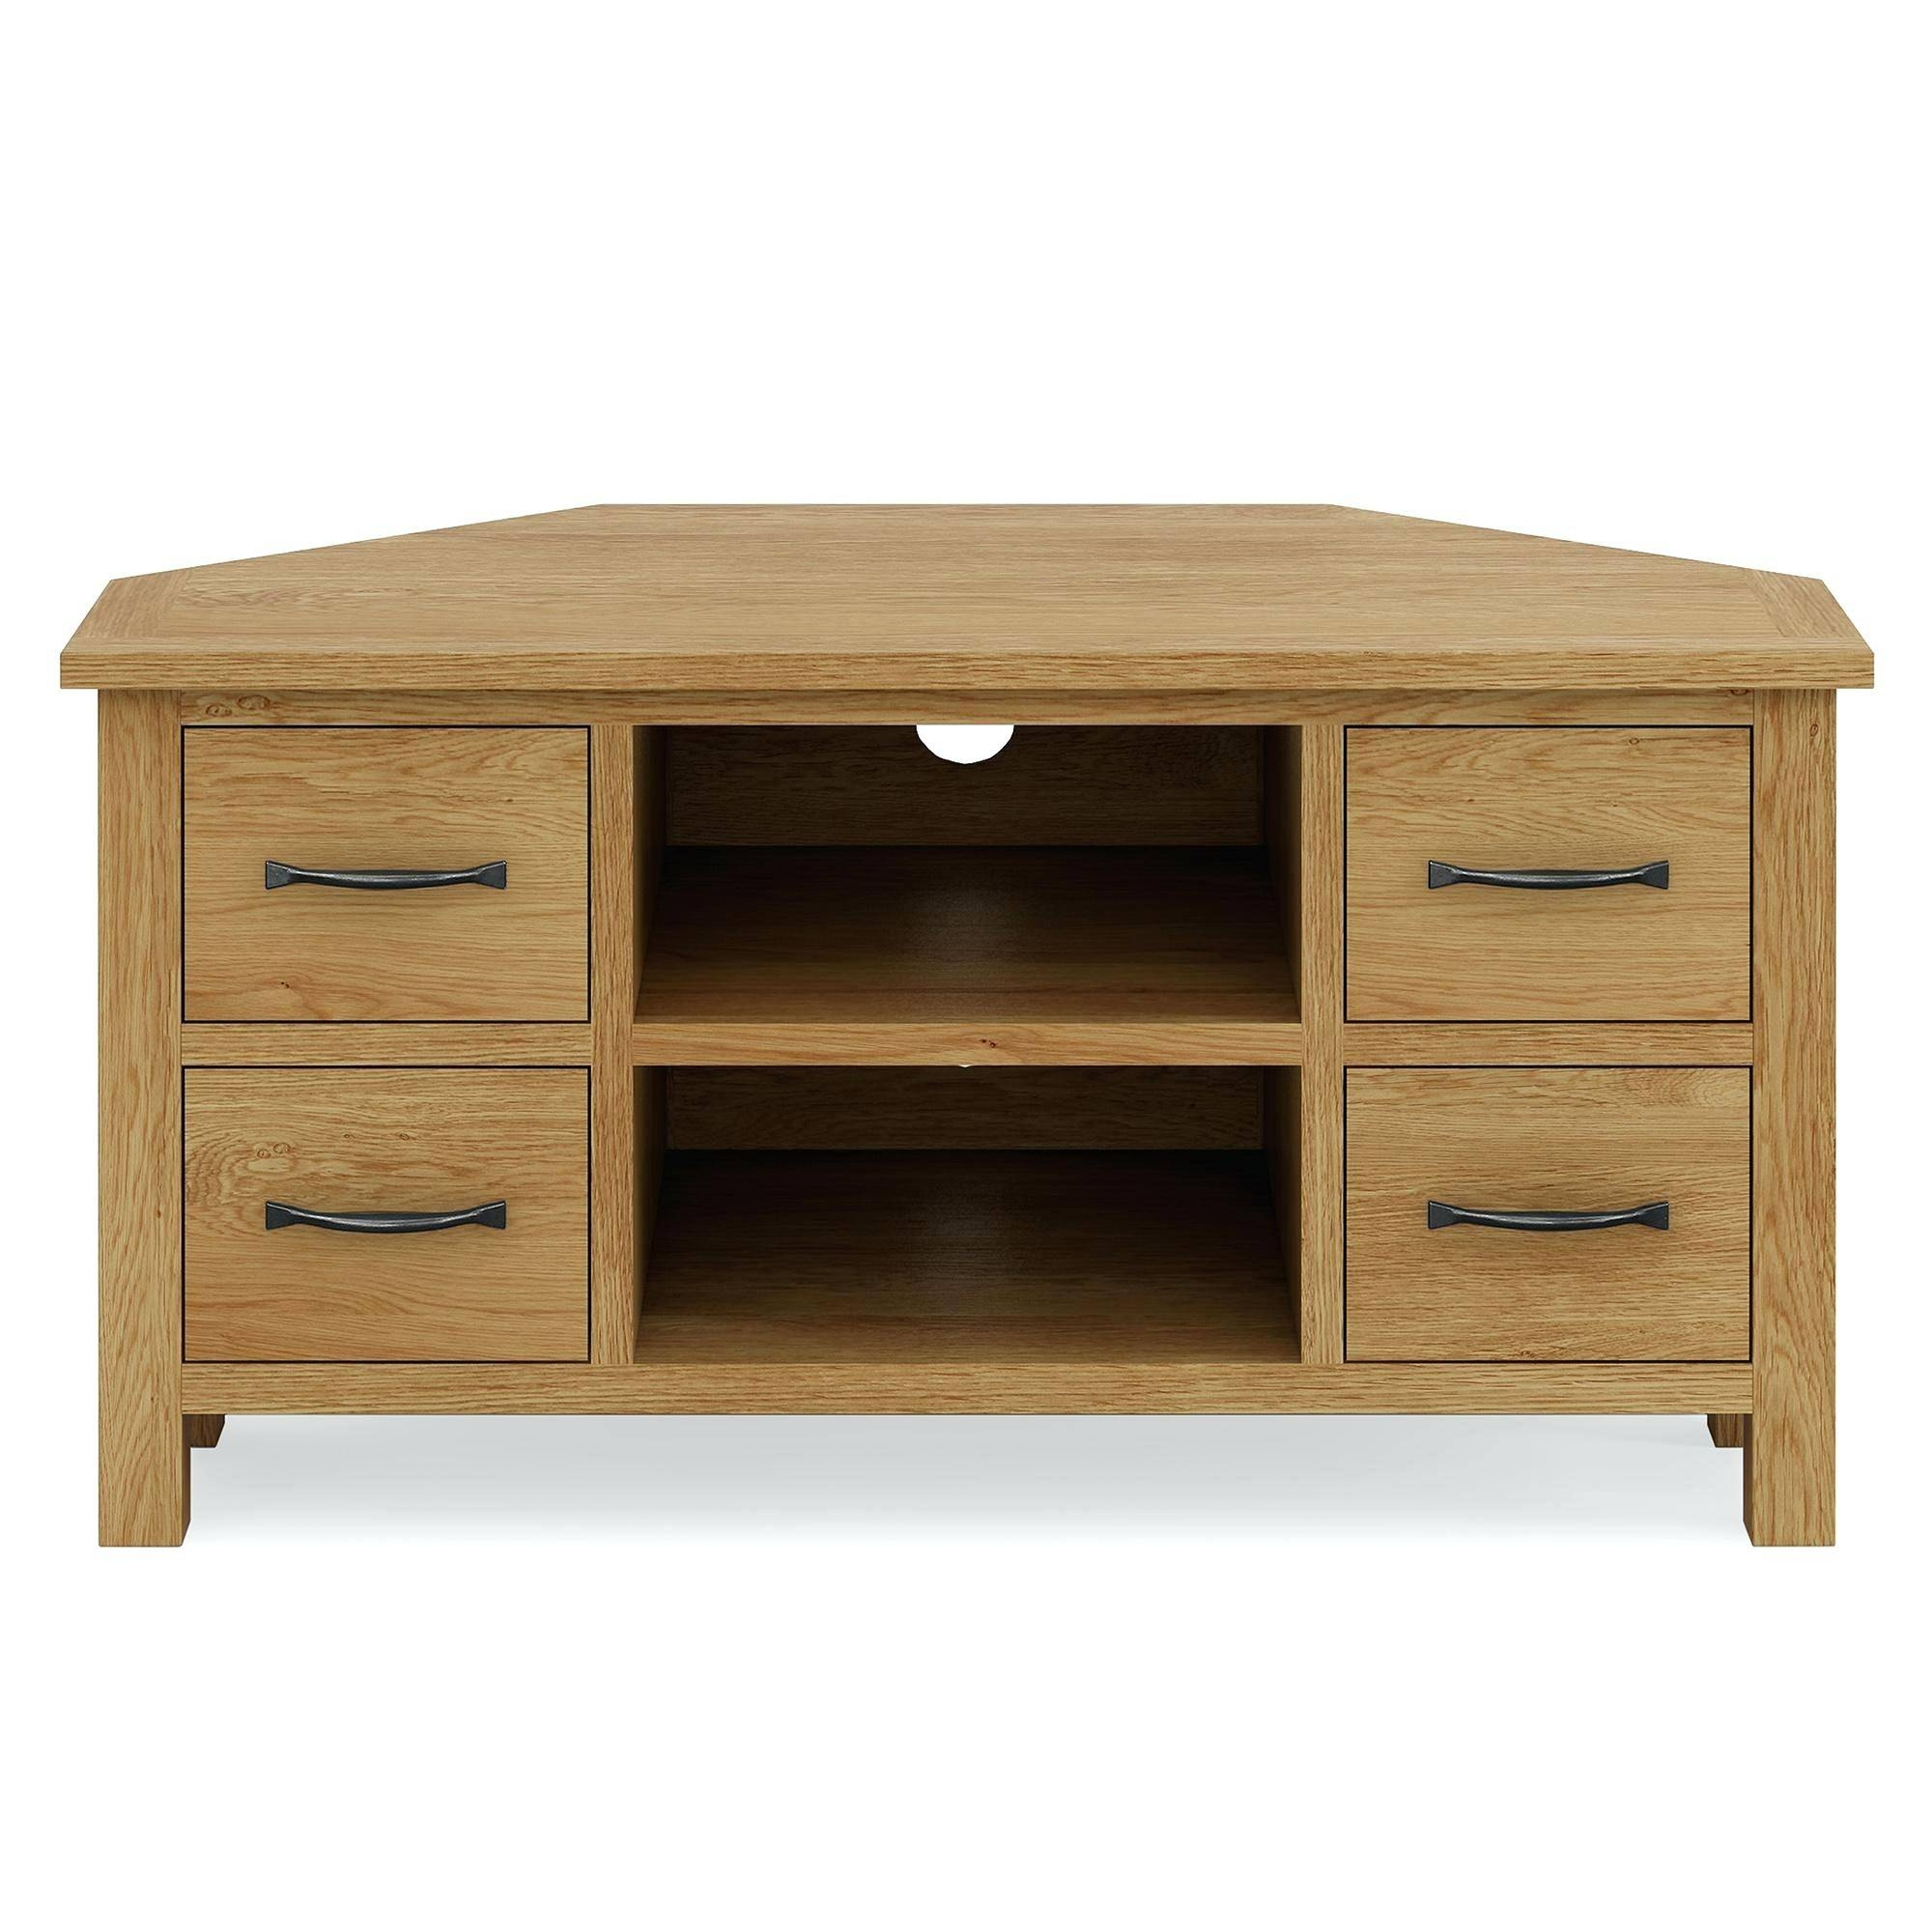 Tv Stand ~ Country Style Solid Oak Tv Stand With Cabinet 51 intended for Country Style Tv Cabinets (Image 15 of 15)